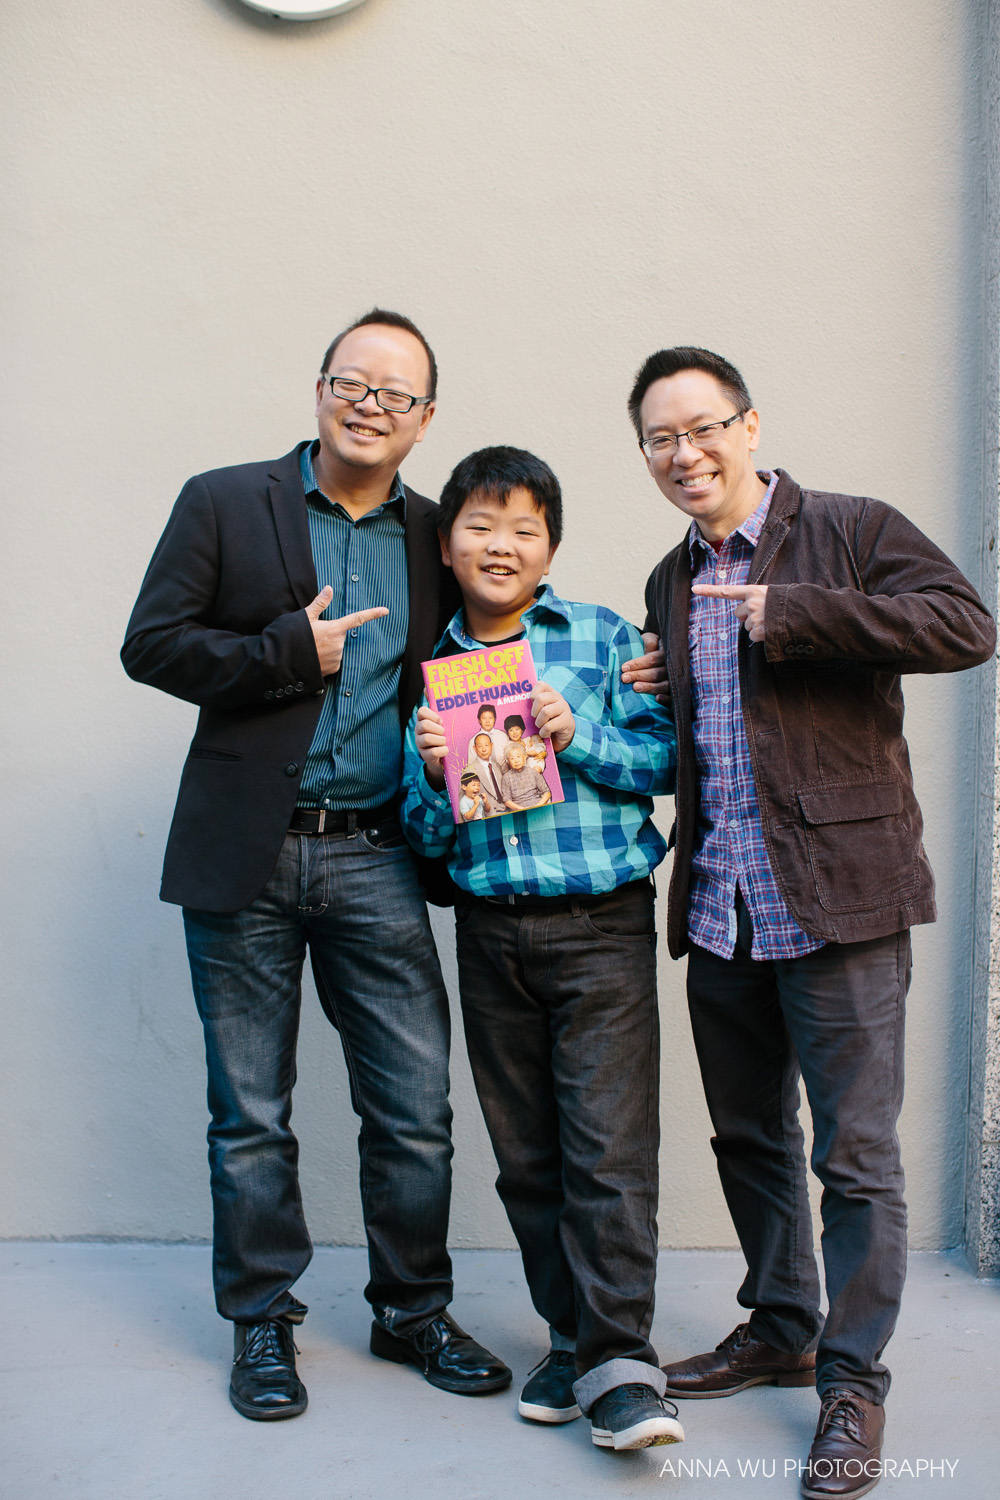 Meet Actor Hudson Yang from ABC's Fresh Off the Boat